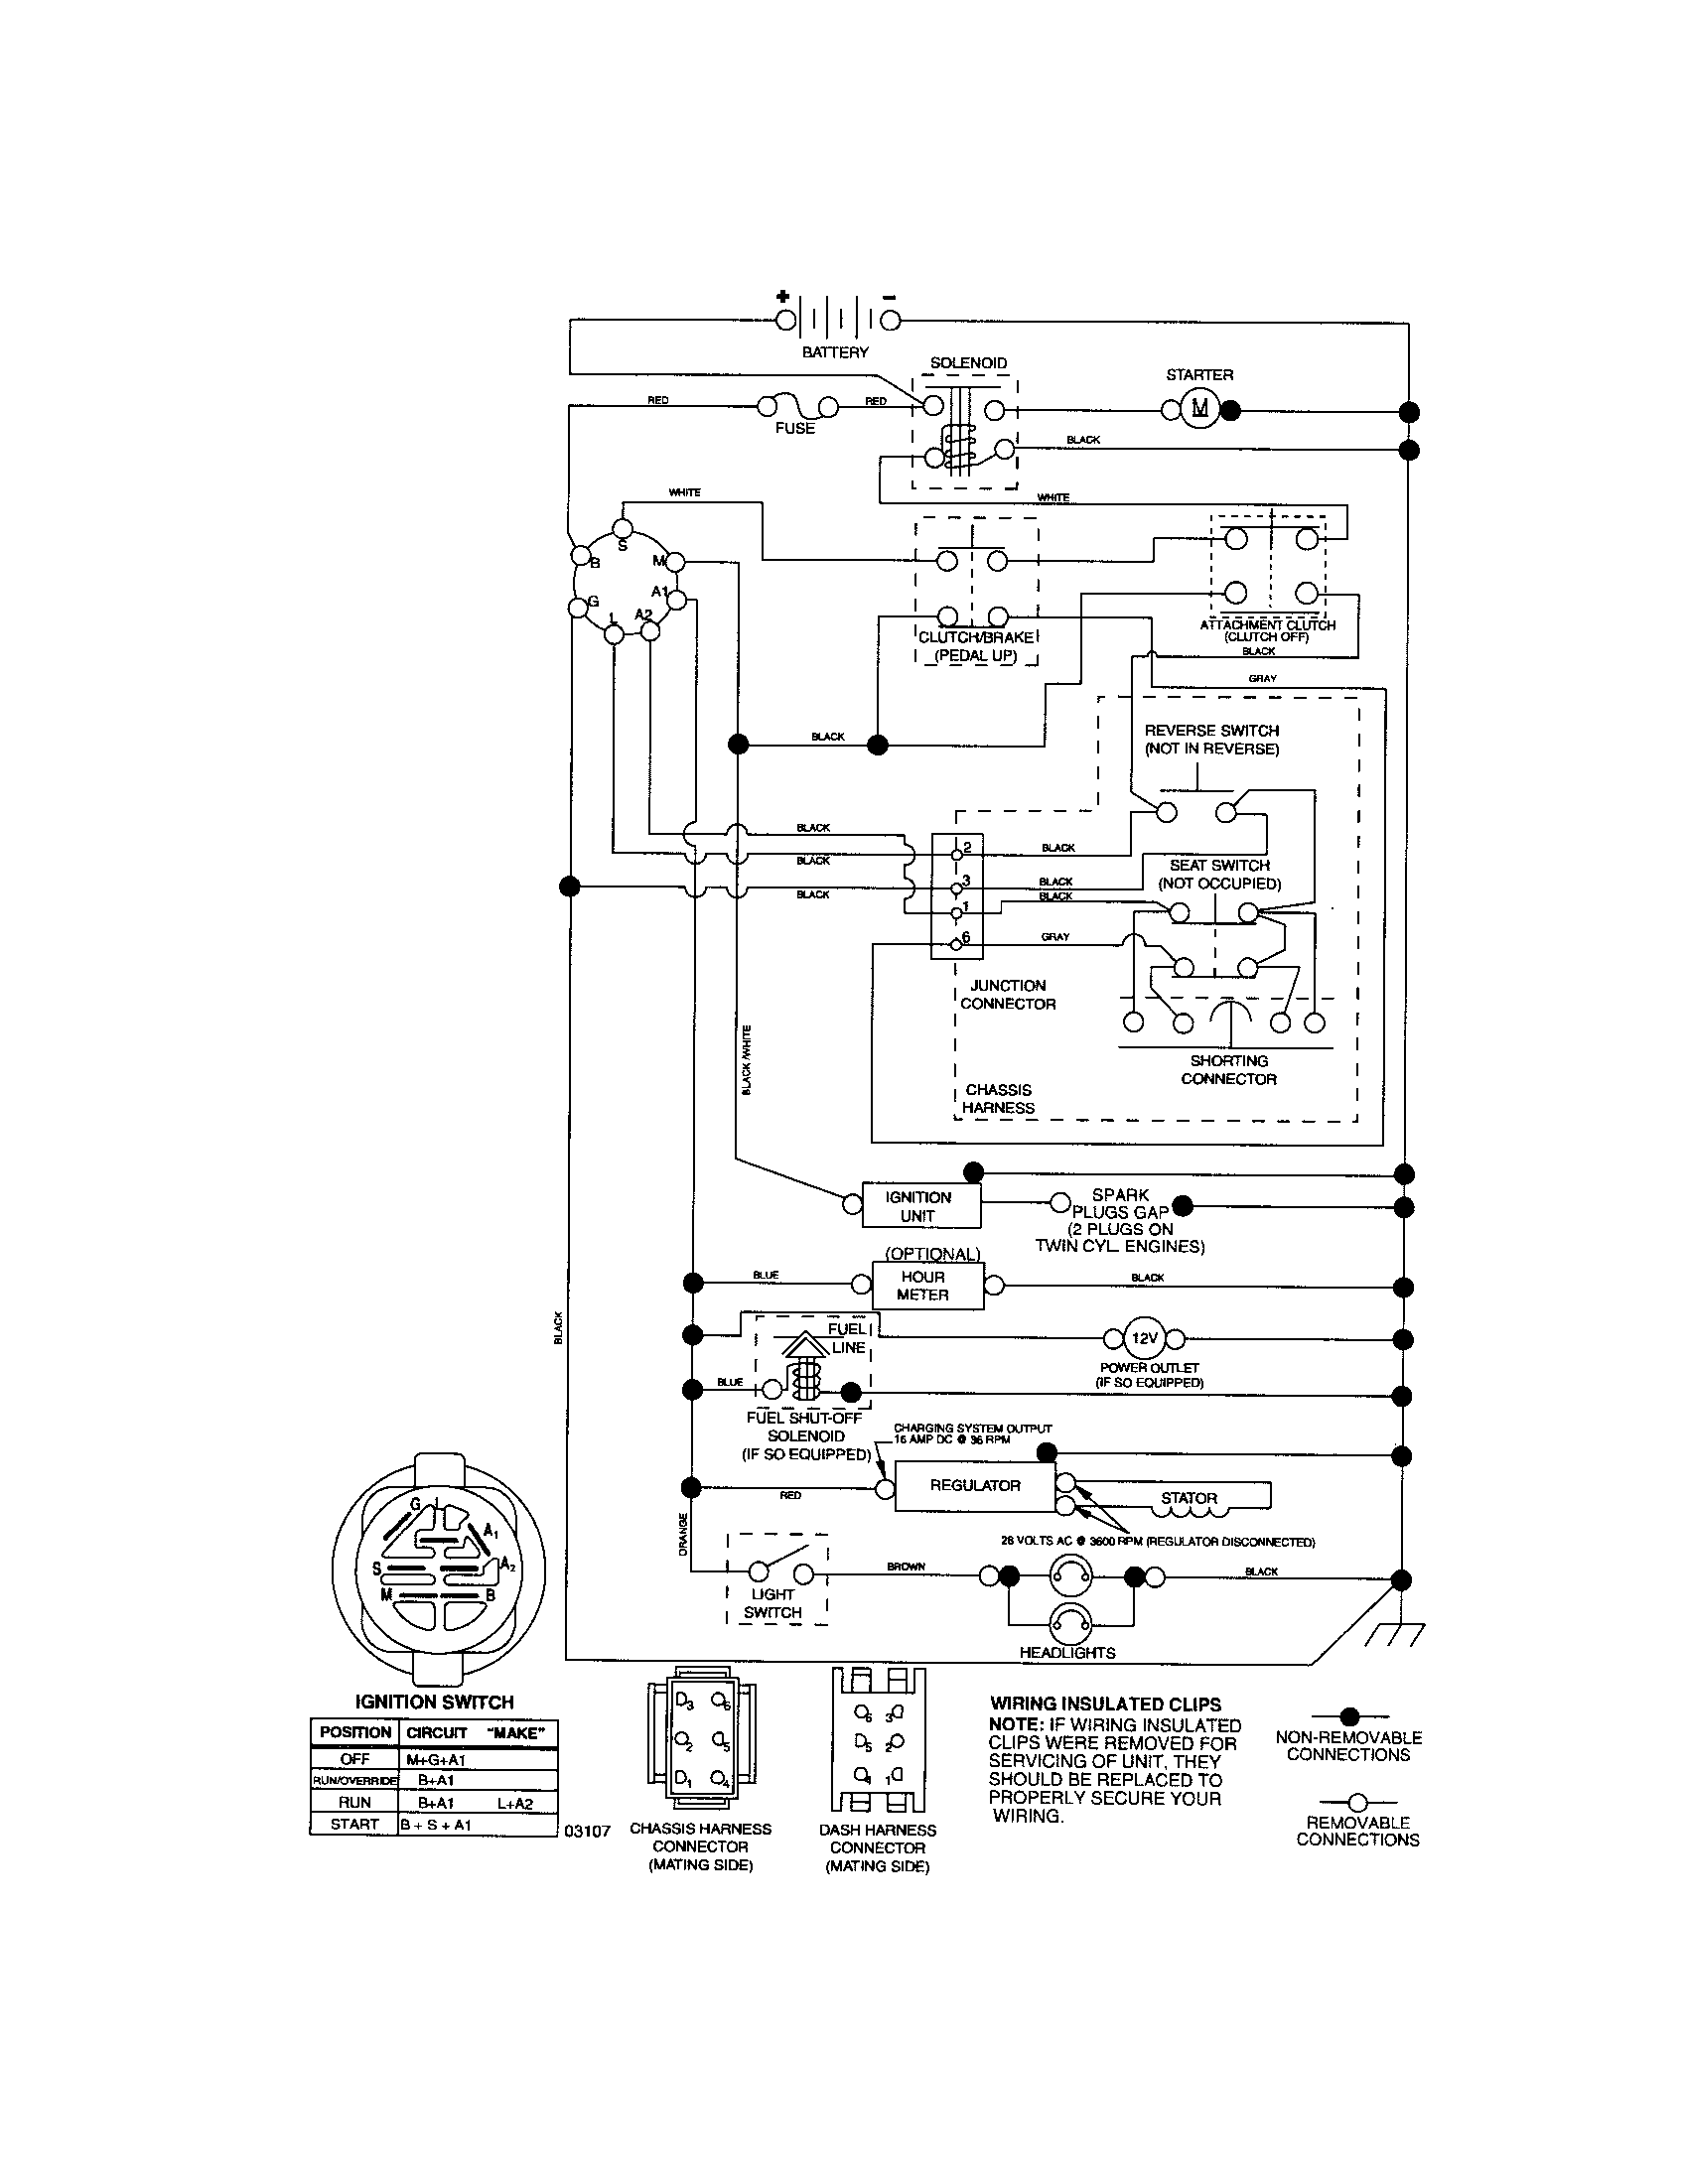 6af5f1447fd13c8443376822ddc1e105 craftsman riding mower electrical diagram wiring diagram murray lawn mower wiring diagram at n-0.co